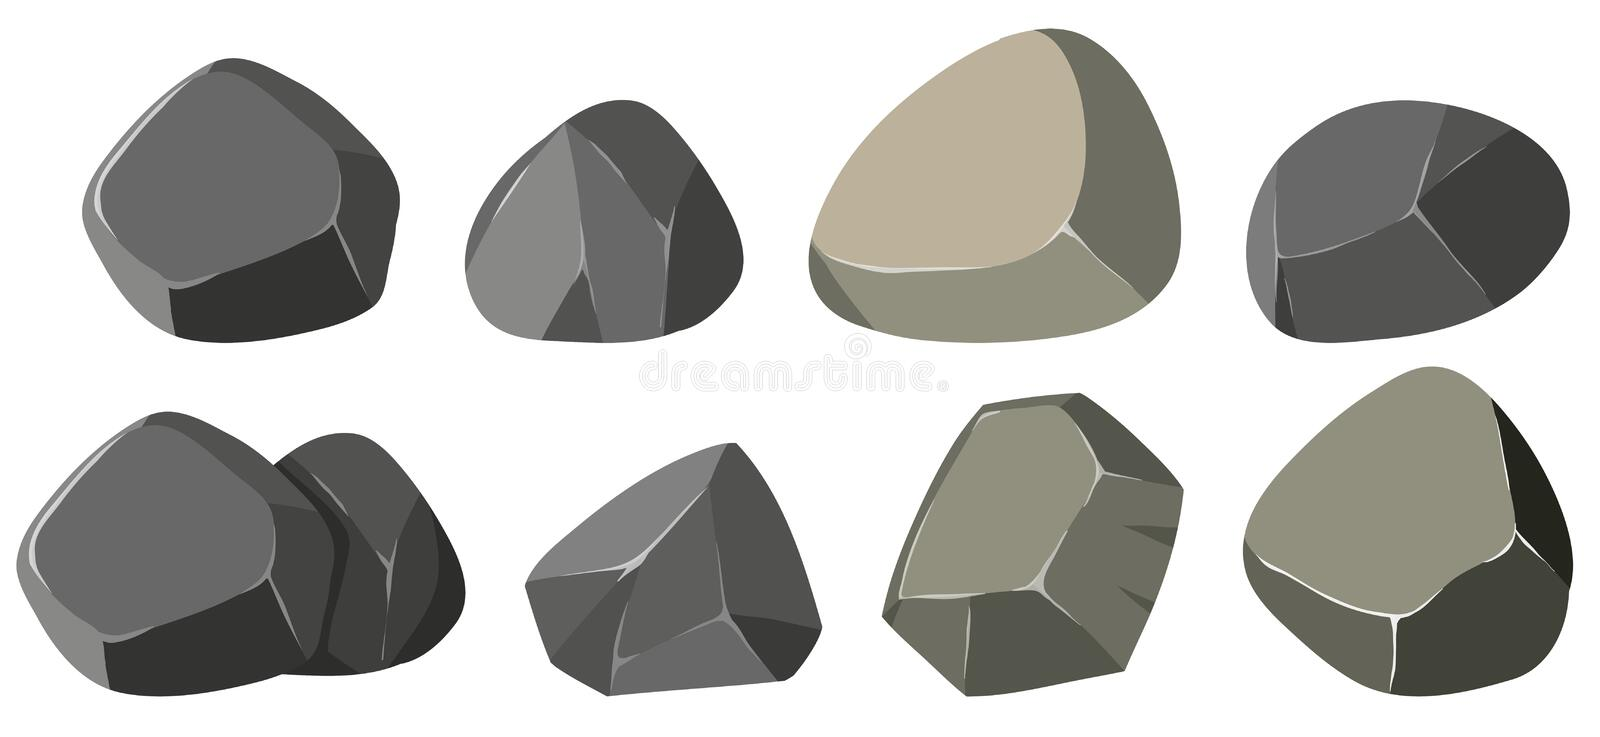 Different shapes of rocks stock illustration